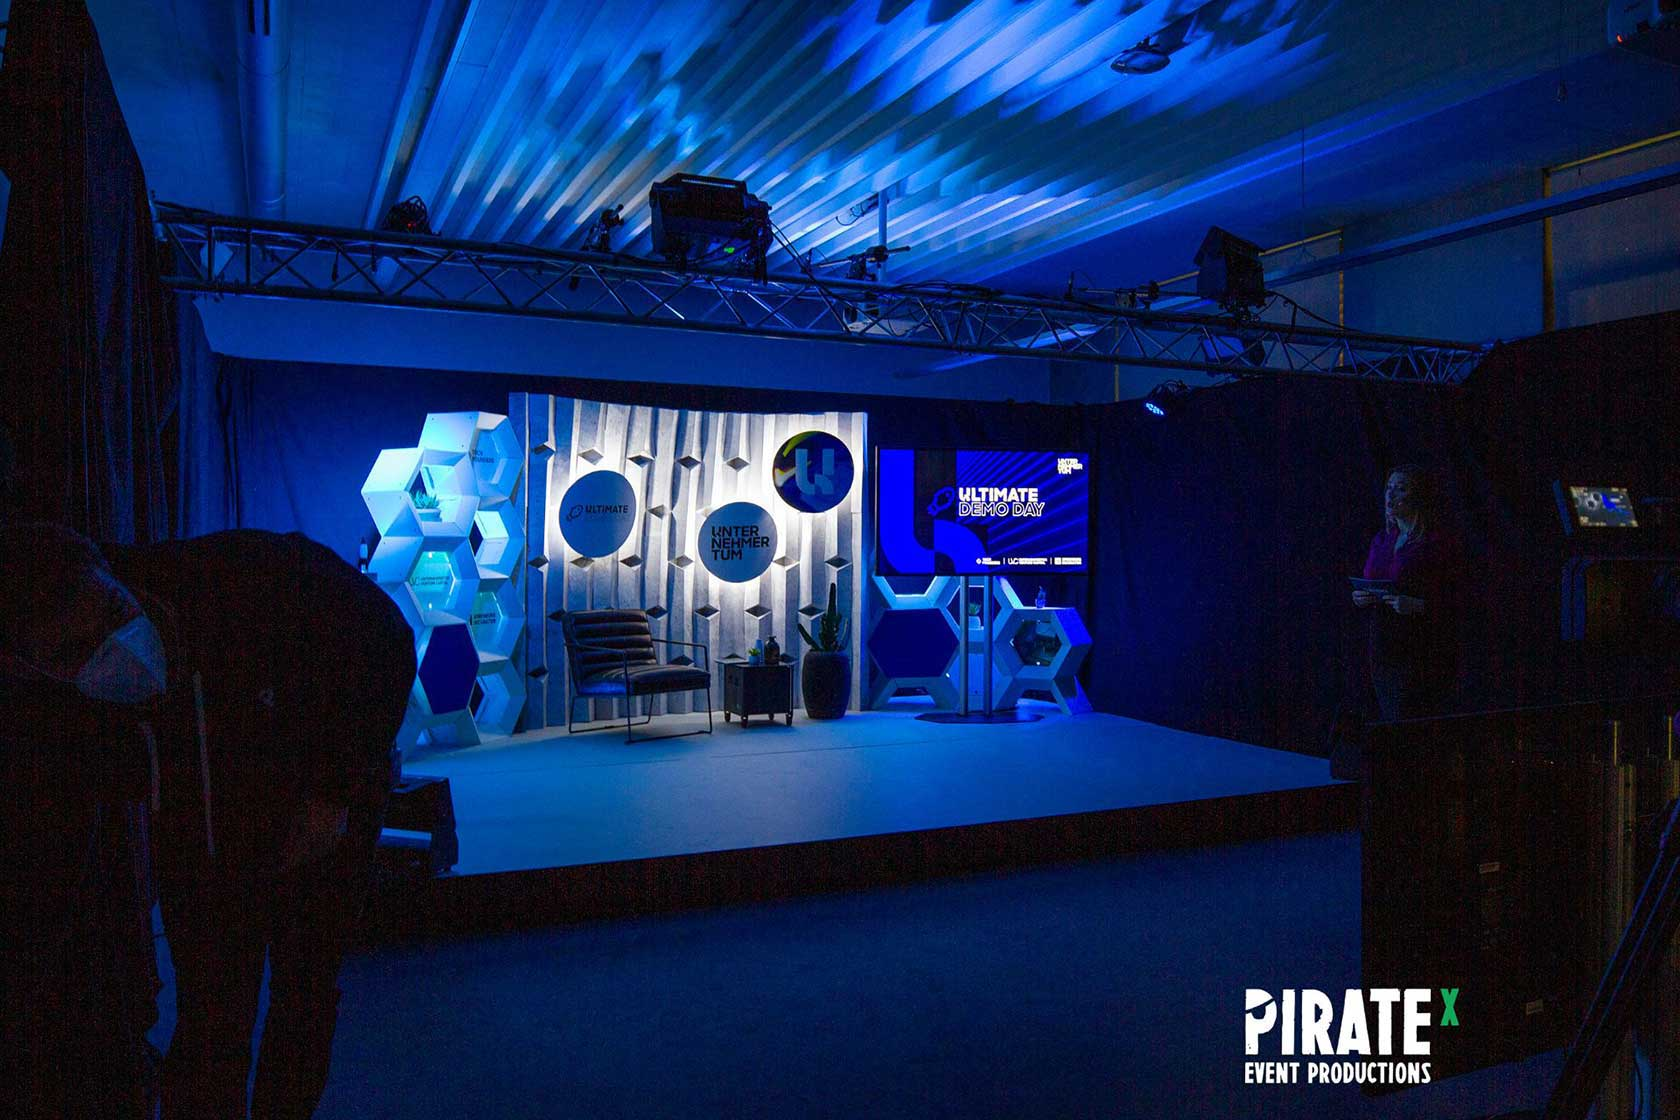 TUM Ultimate Demo Day 2020 produced by PIRATEx